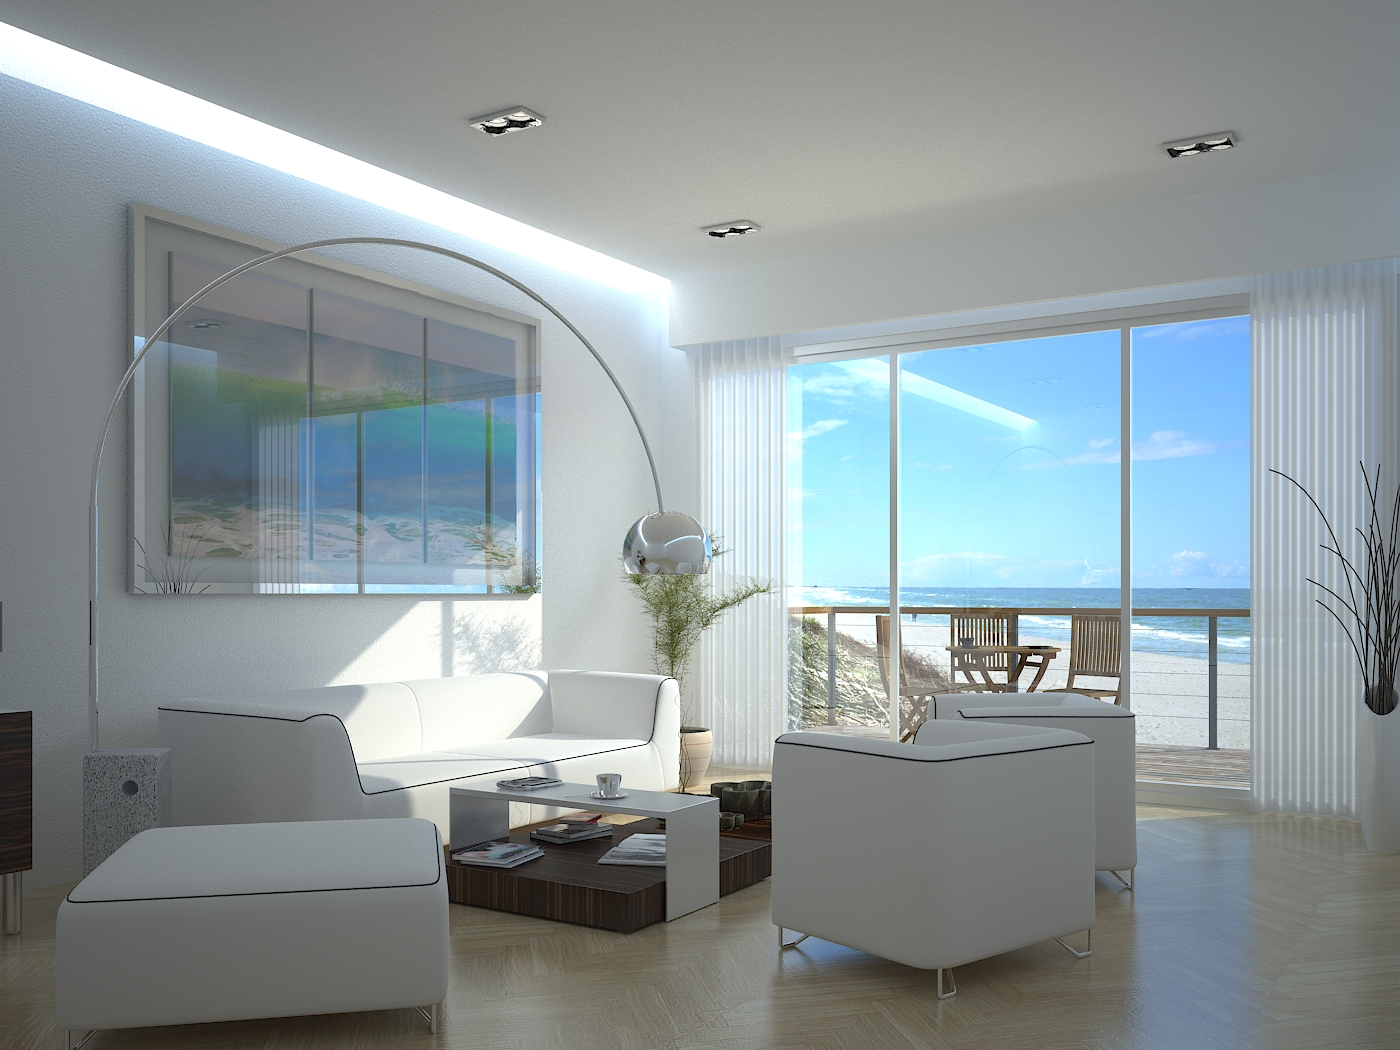 New beach house interior by outboxdesign on deviantart for New house interior ideas